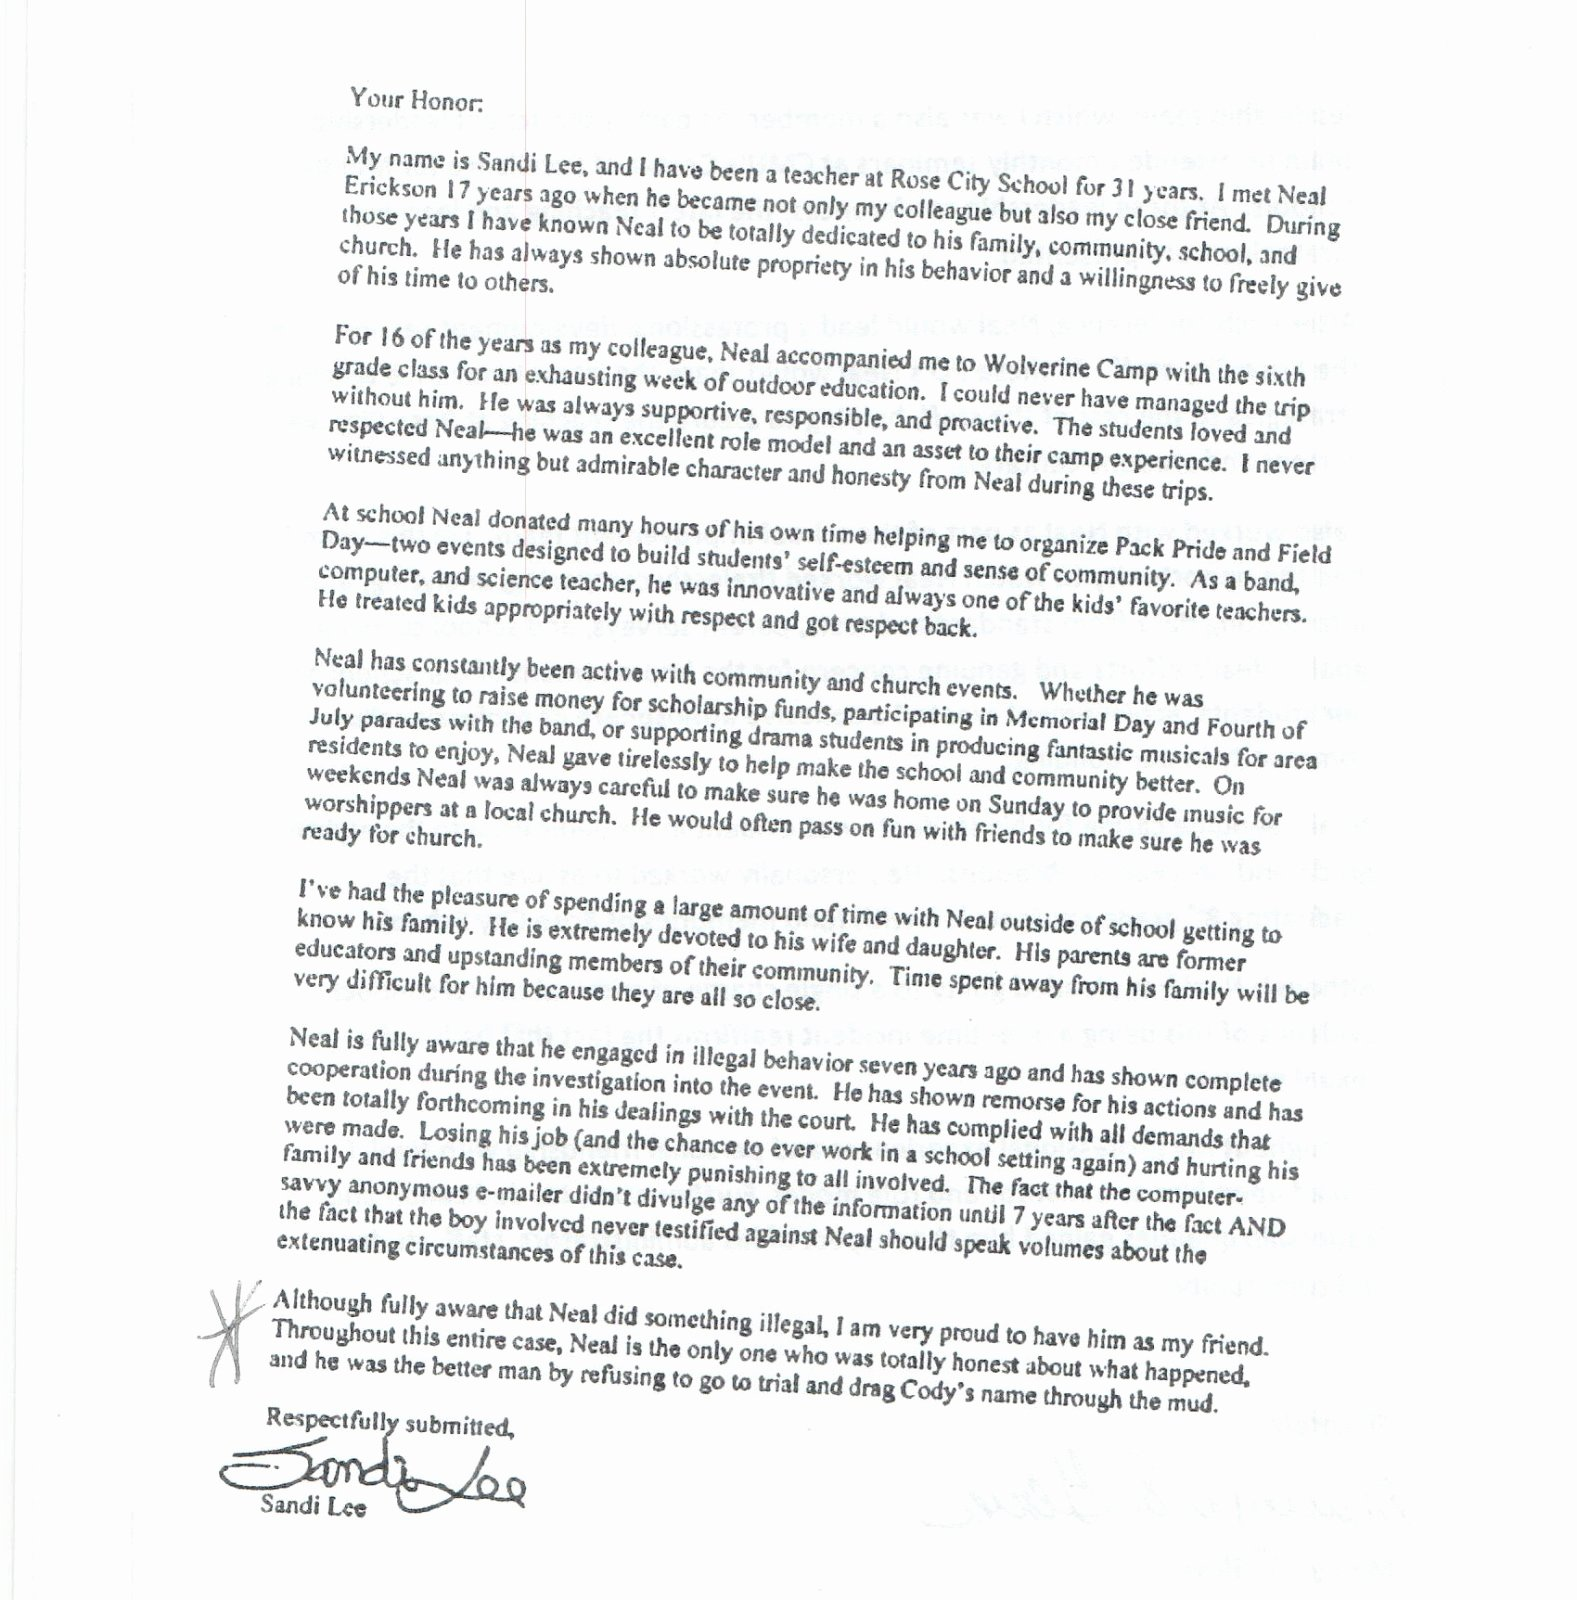 Letter to Judge asking for Leniency for Friend Inspirational Leniency Letters From West Branch Rose City Teachers